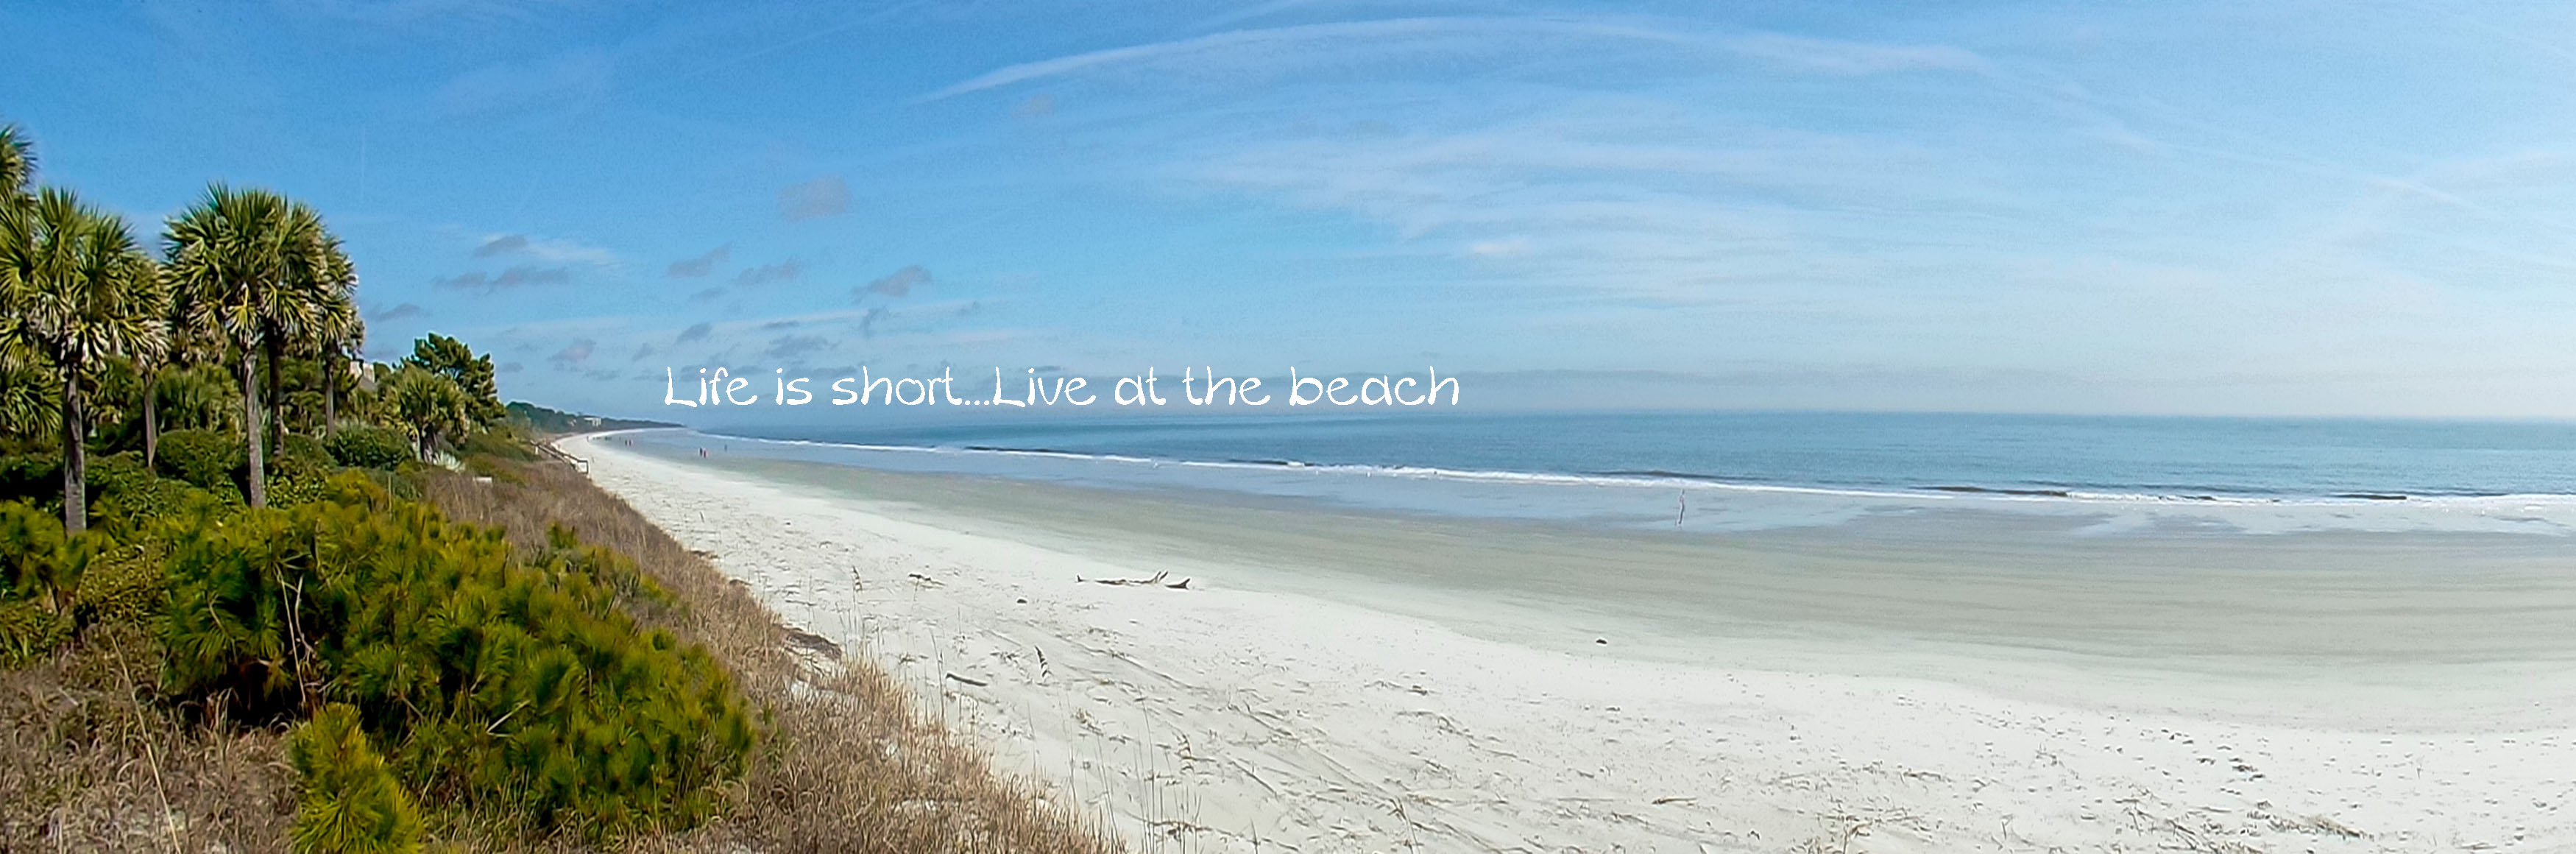 Things to Do on Hilton Head Island Winter/Spring 2019